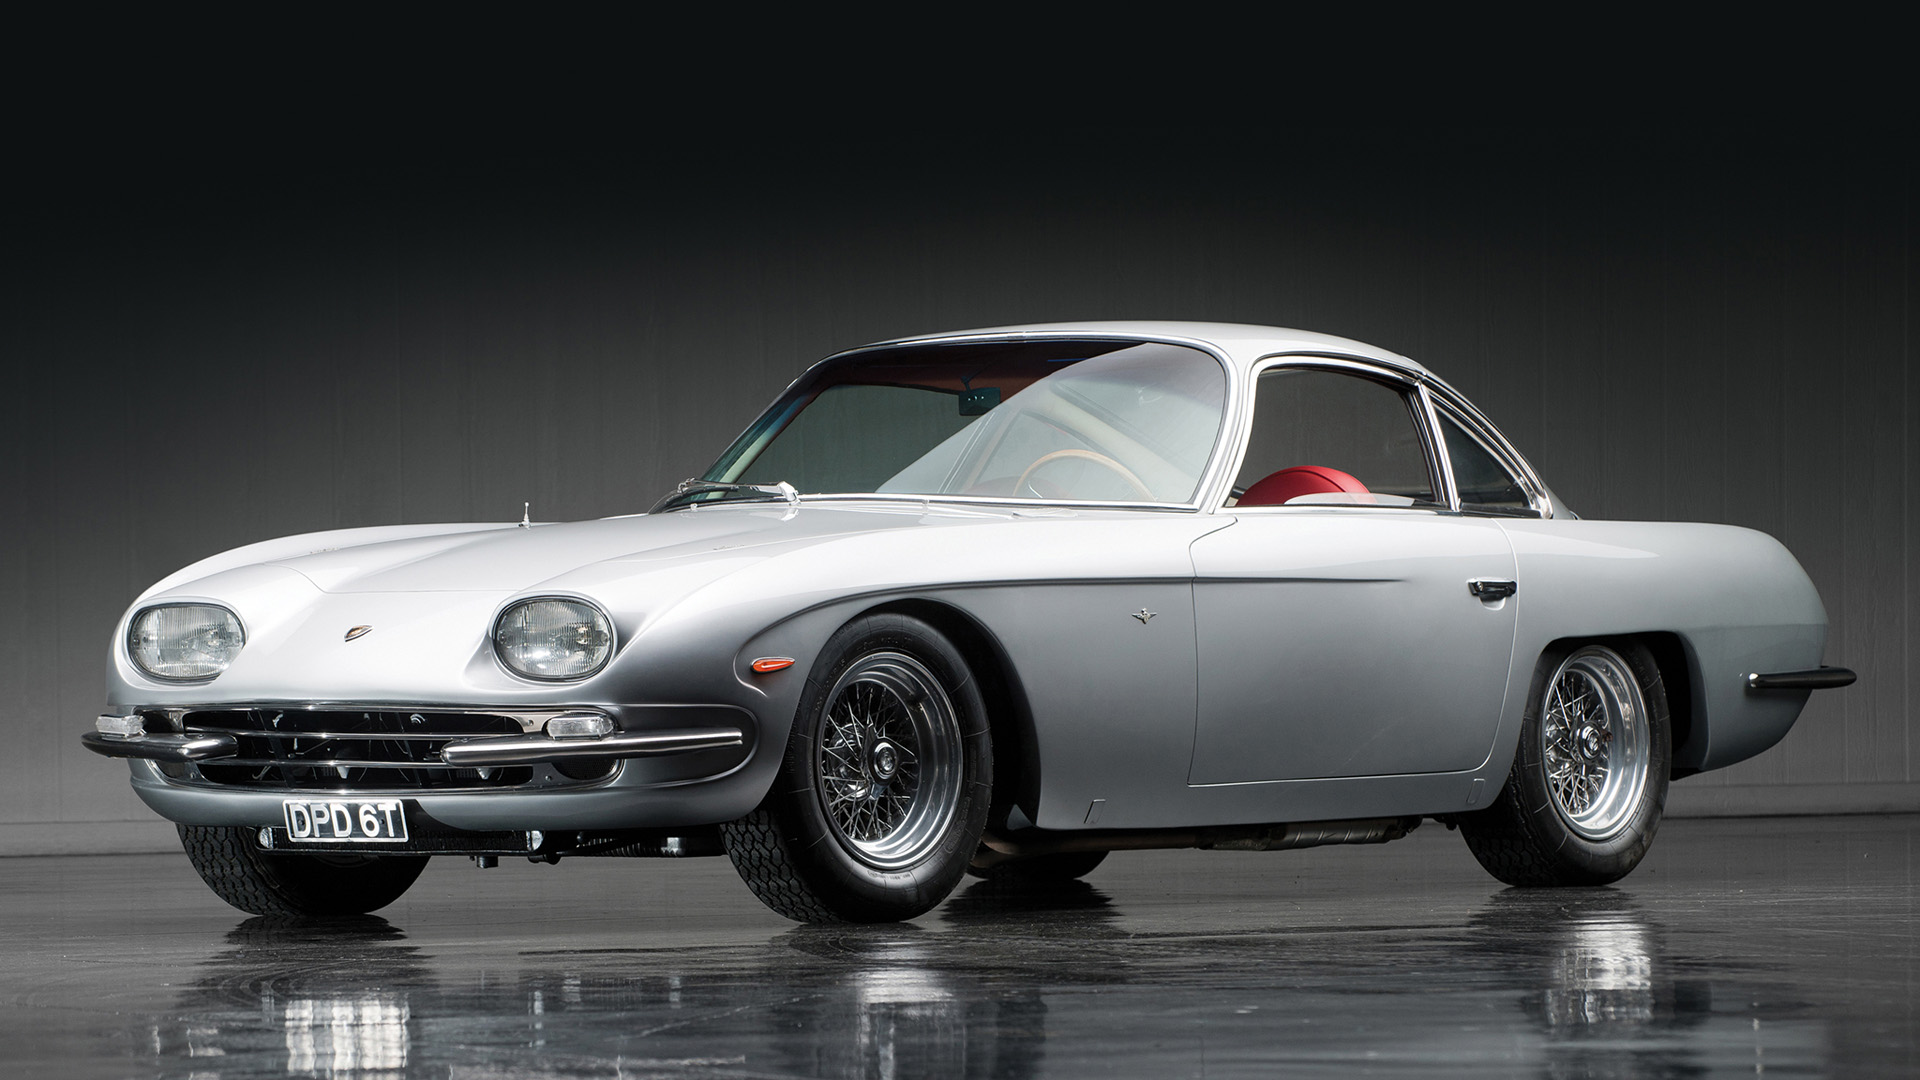 Lamborghini's first car - the 350 GT